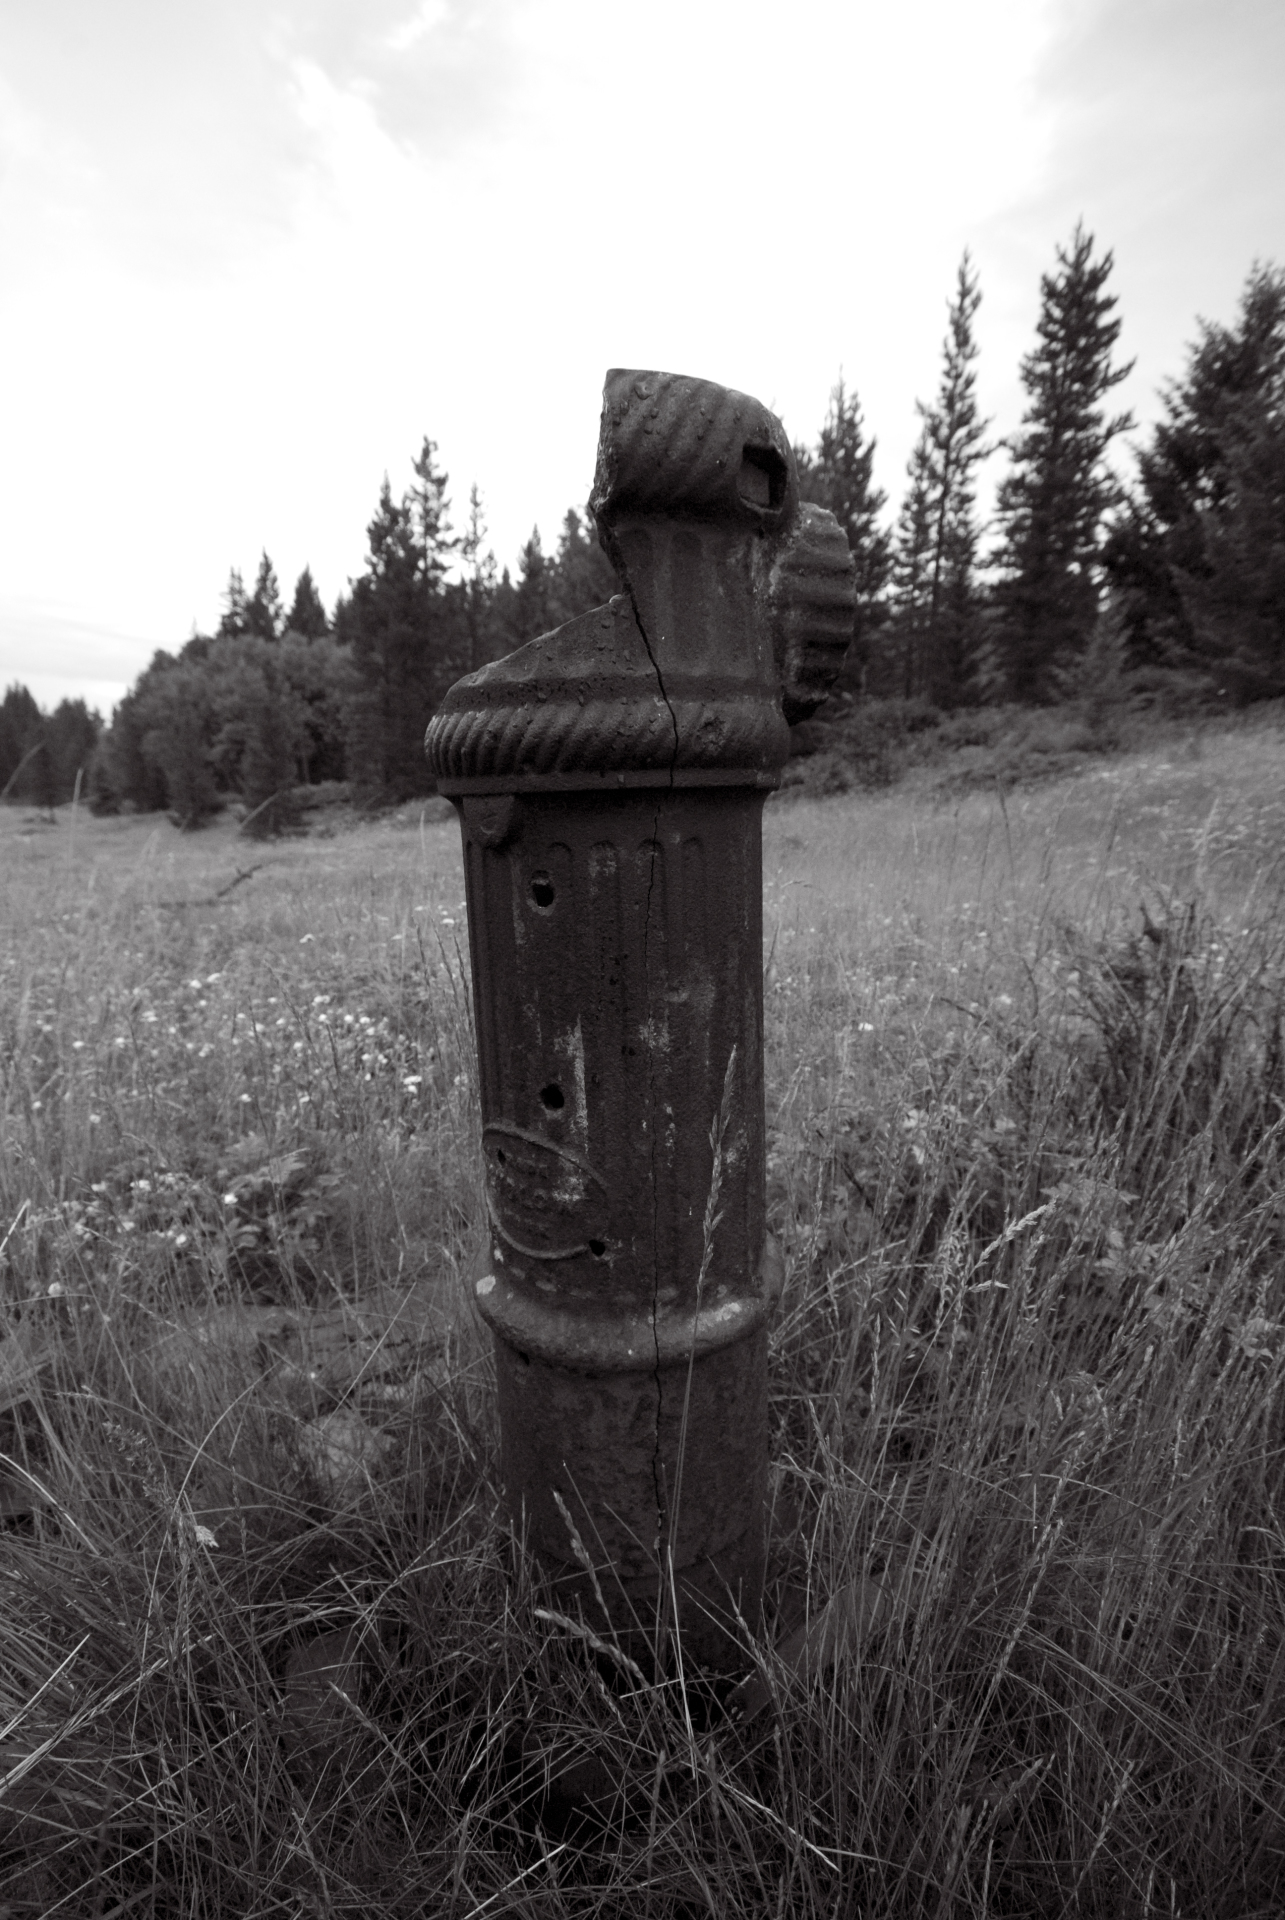 Fire Hydrant Marking the Wealthy Residential Area